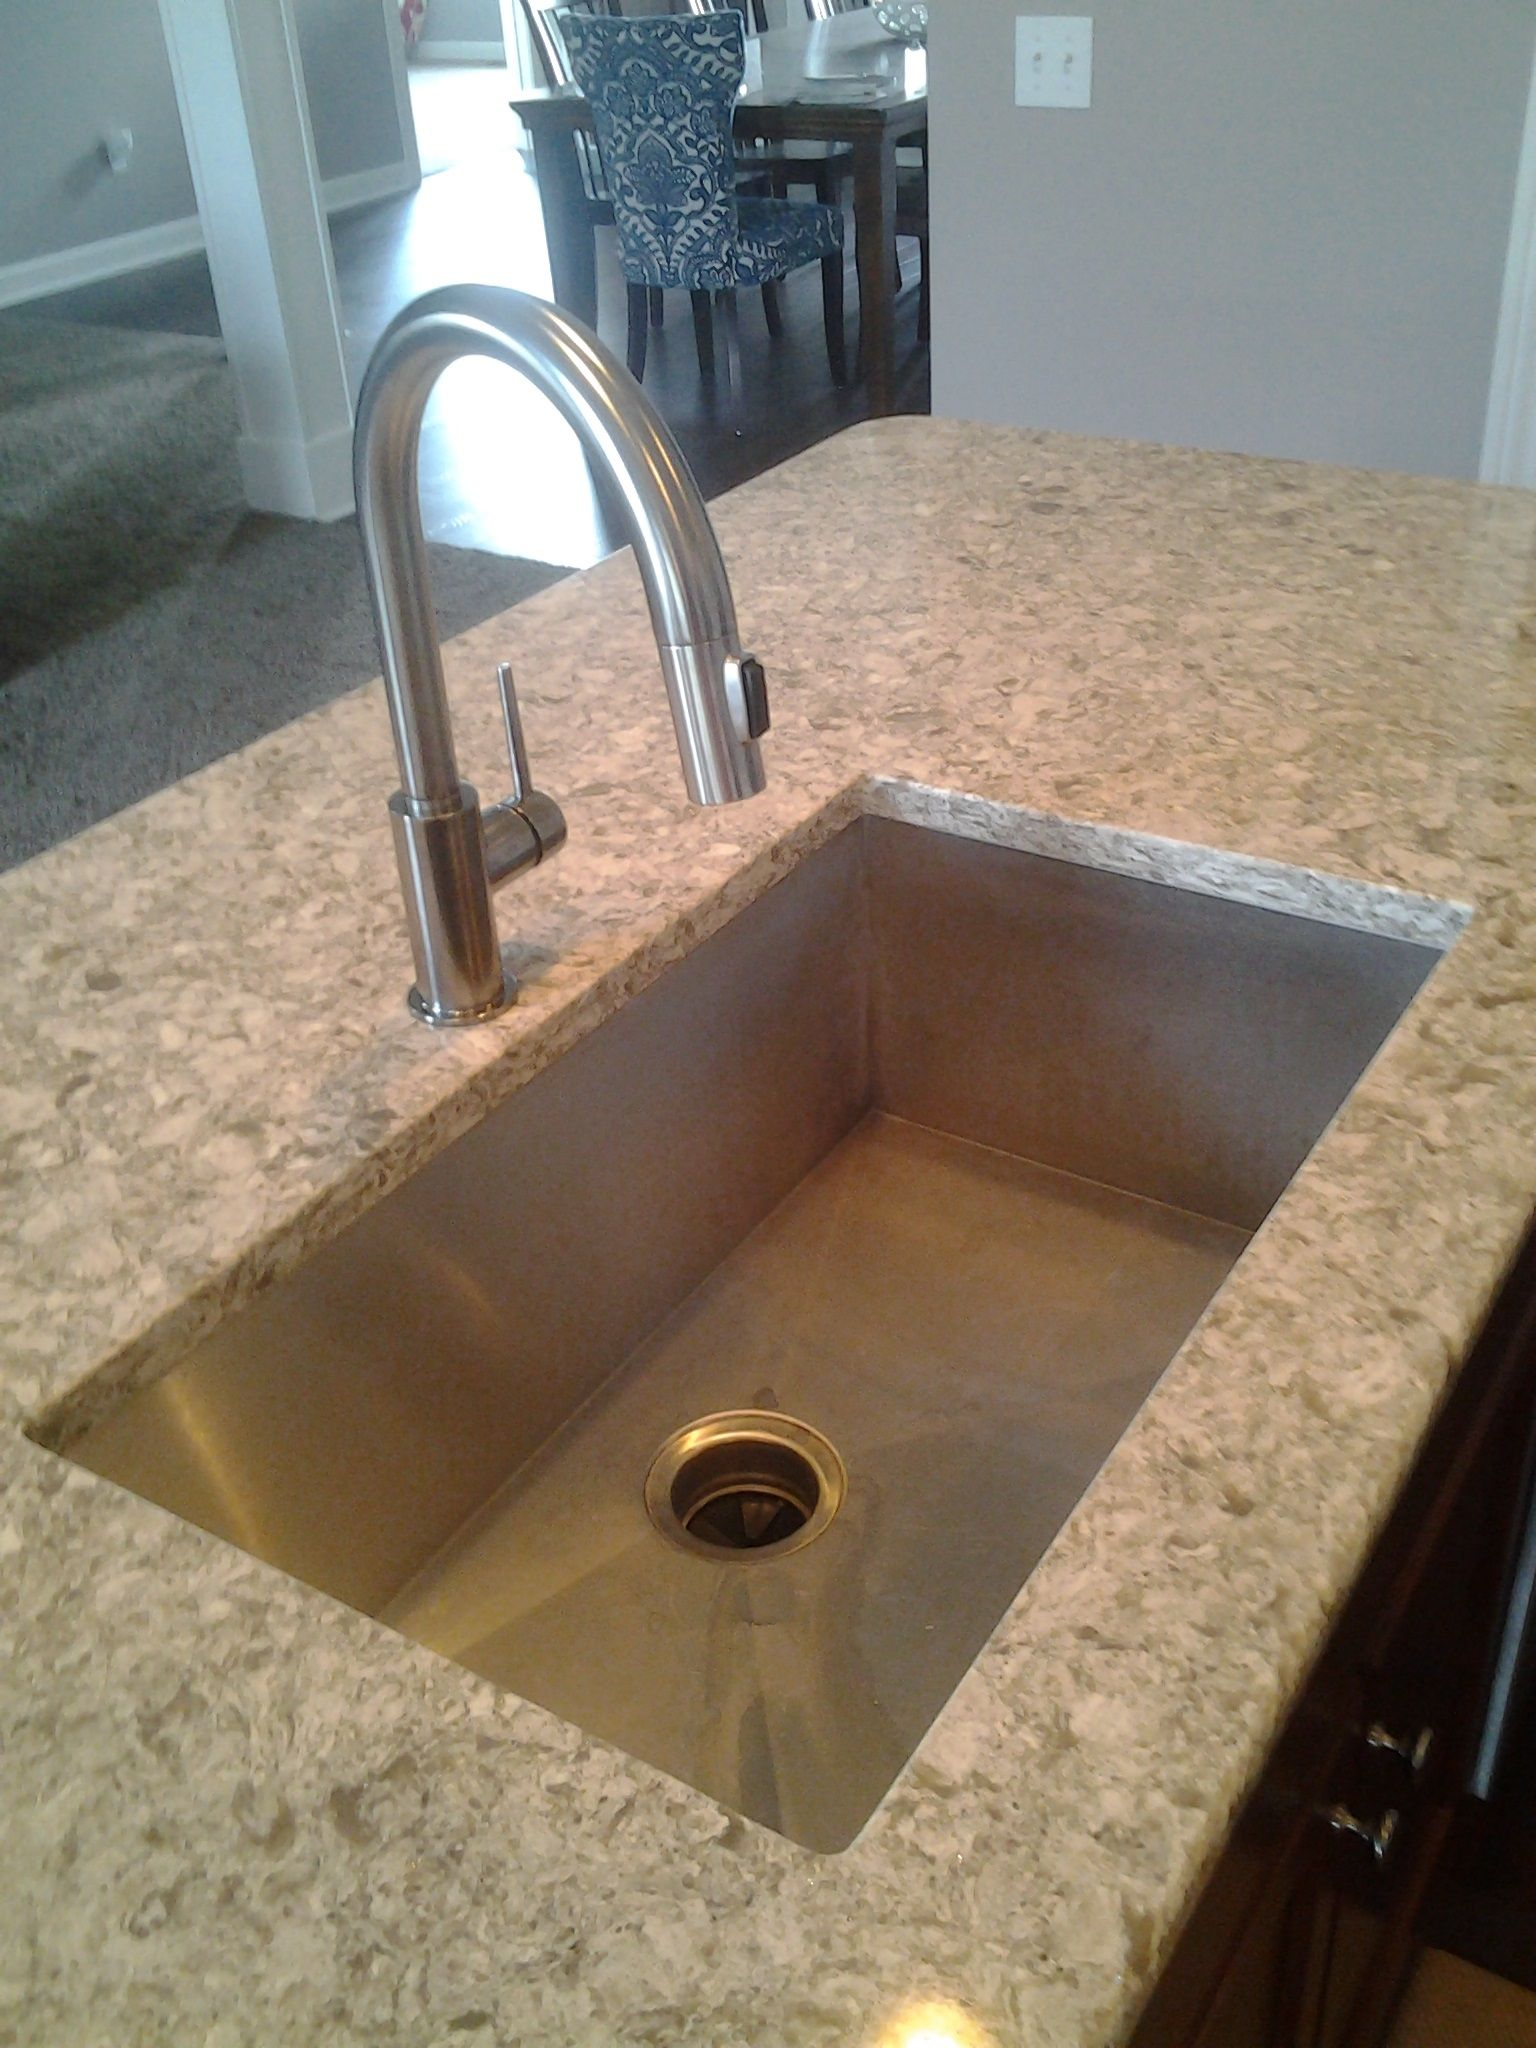 Undermount Sinks For Quartz Countertops Bindu Bhatia